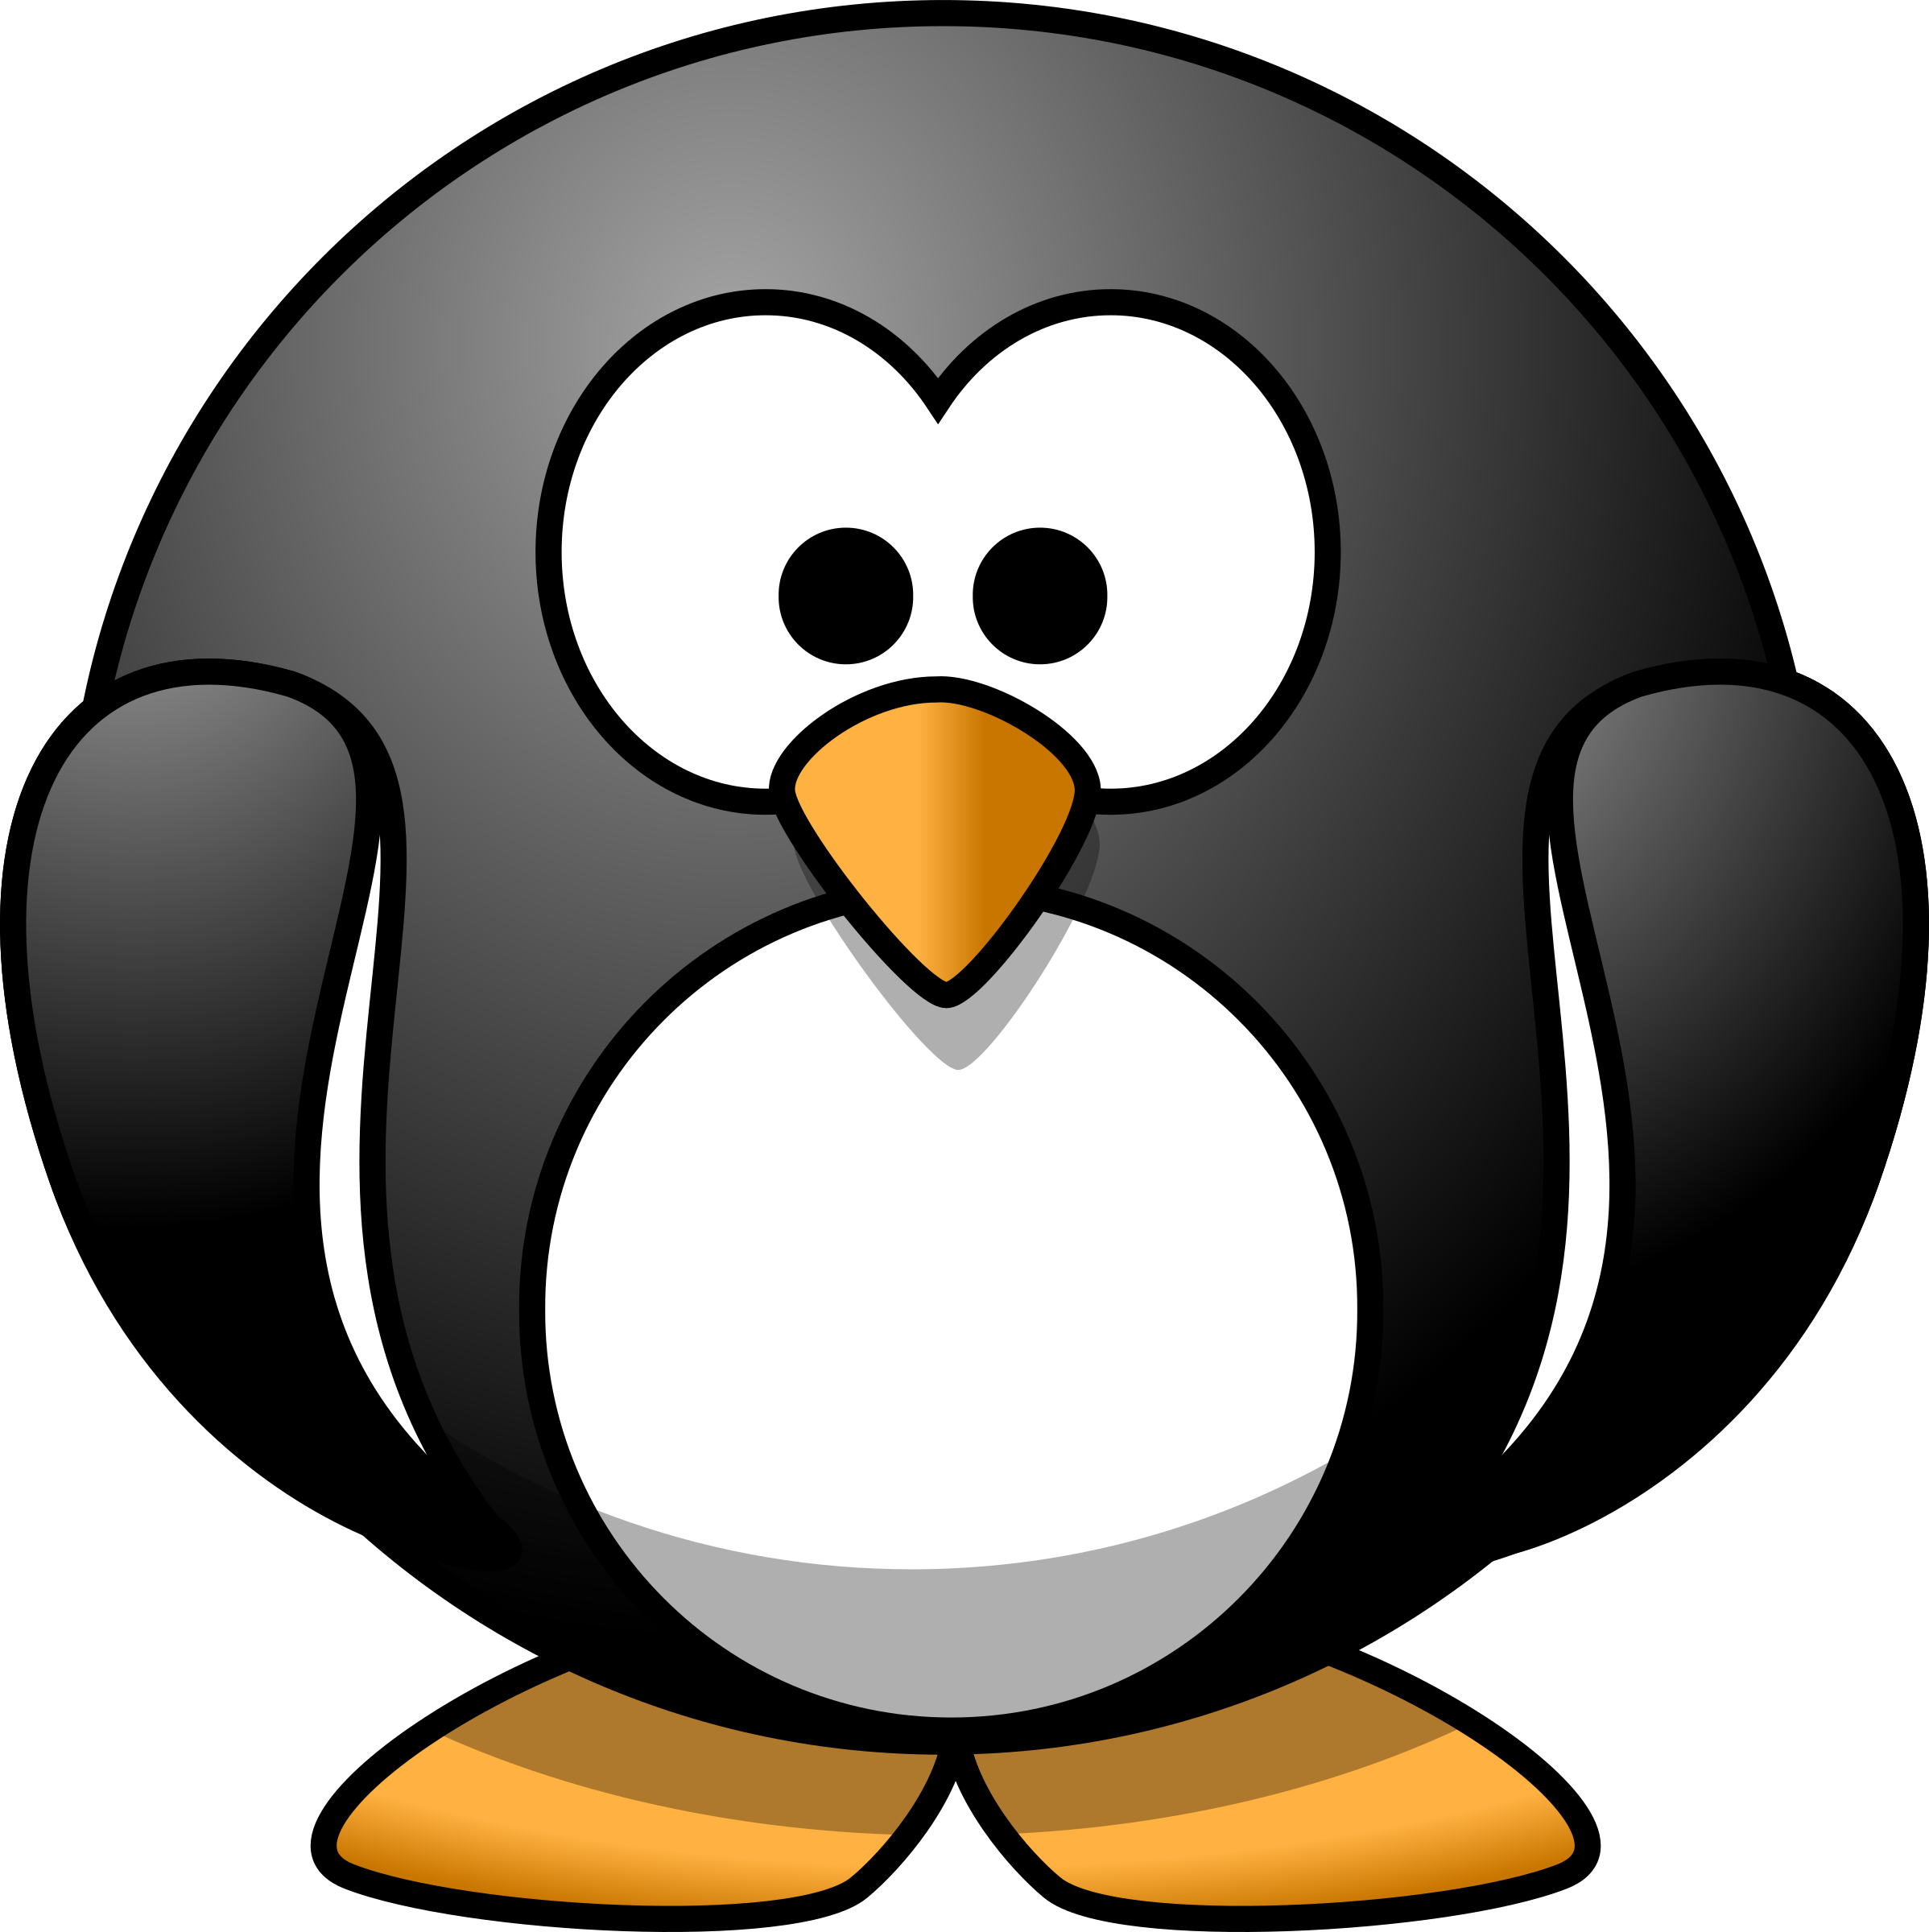 Penguin clip art transparent background. Cartoon icons png free